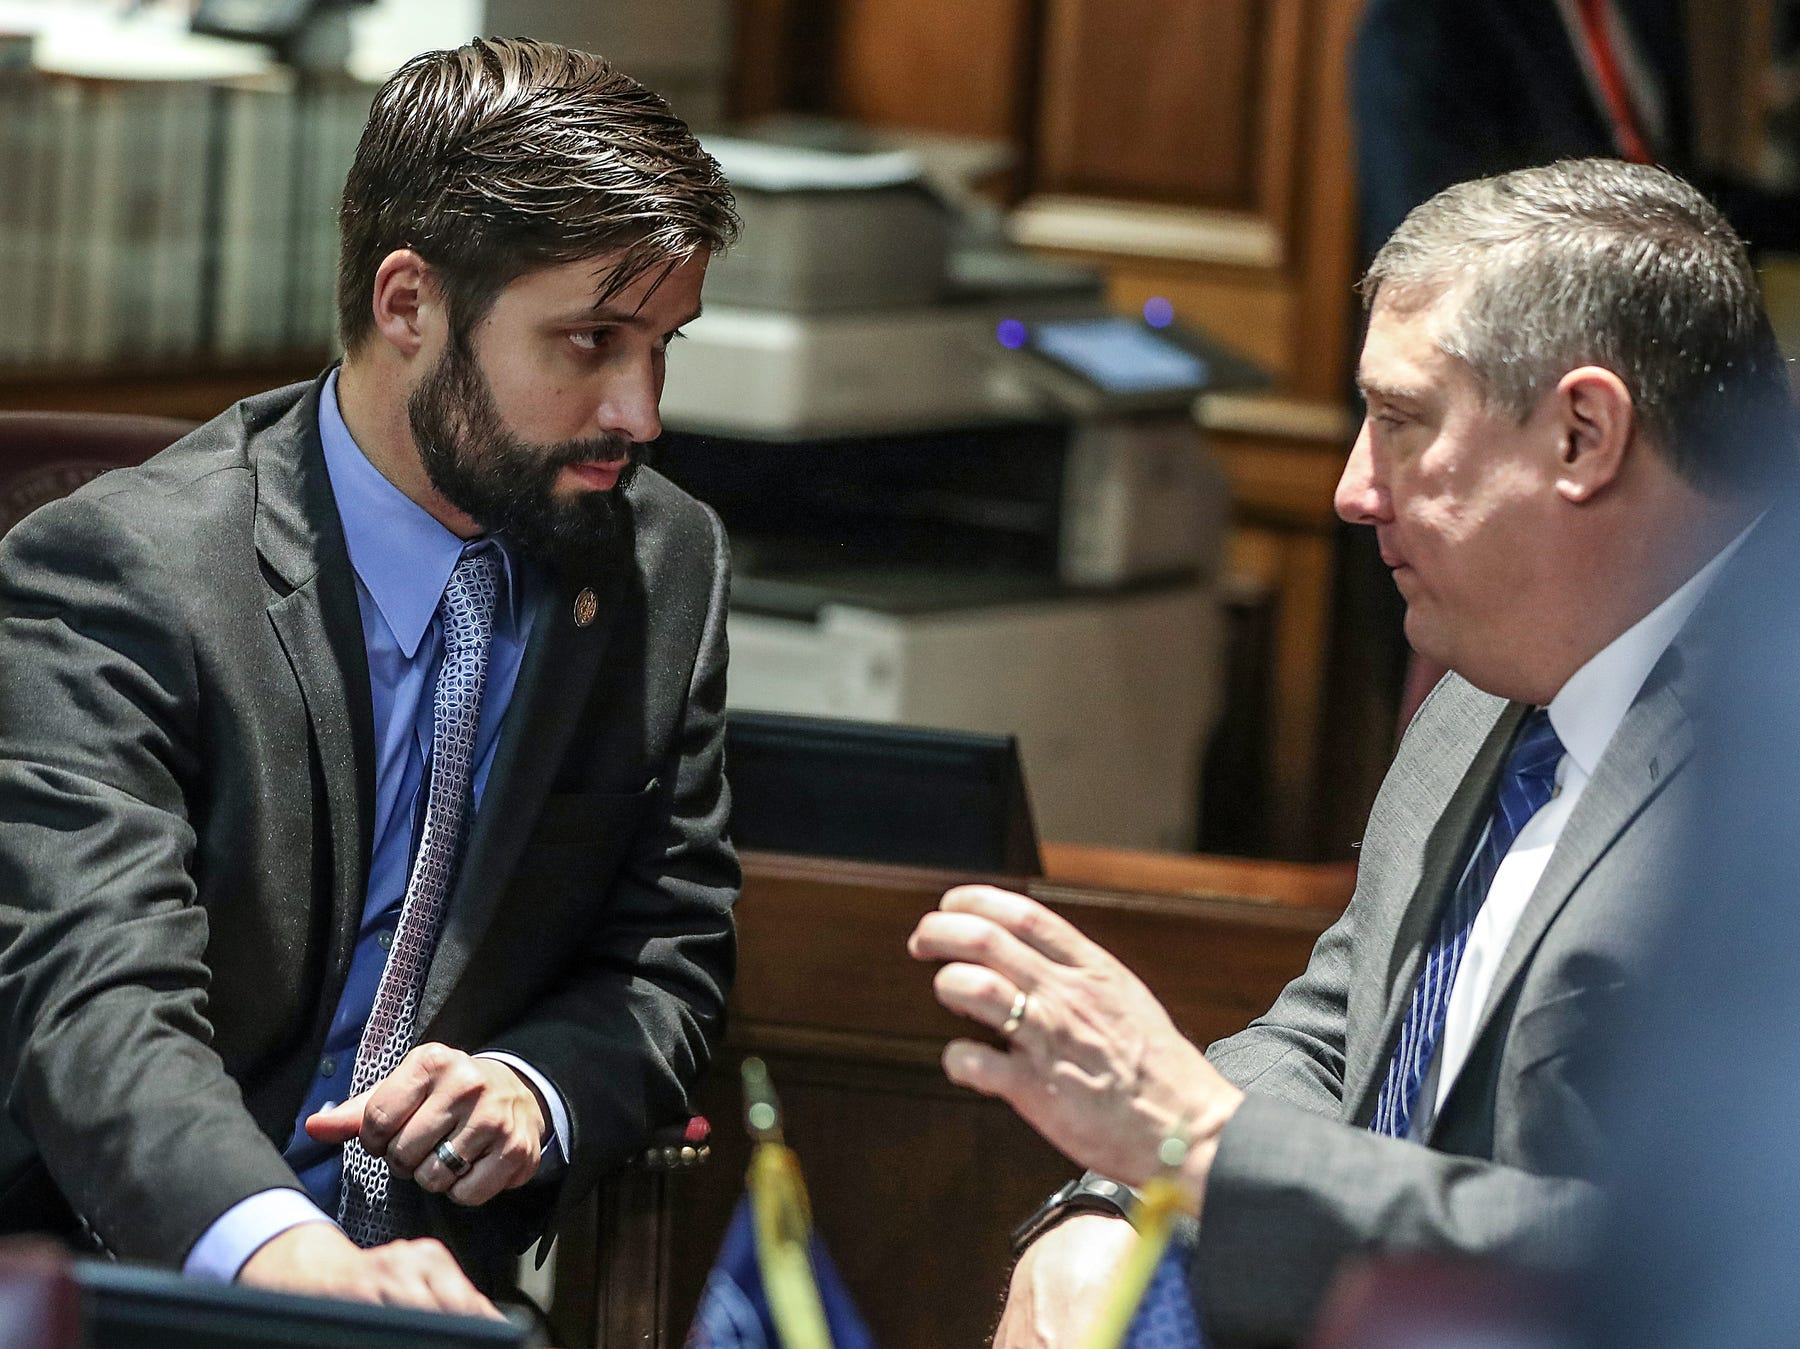 From left, Rep. Matt Hostettler talks with Rep. Ben Smaltz on the starting day of legislative session at the Indiana Statehouse, Indianapolis, Thursday, Jan. 3, 2019.